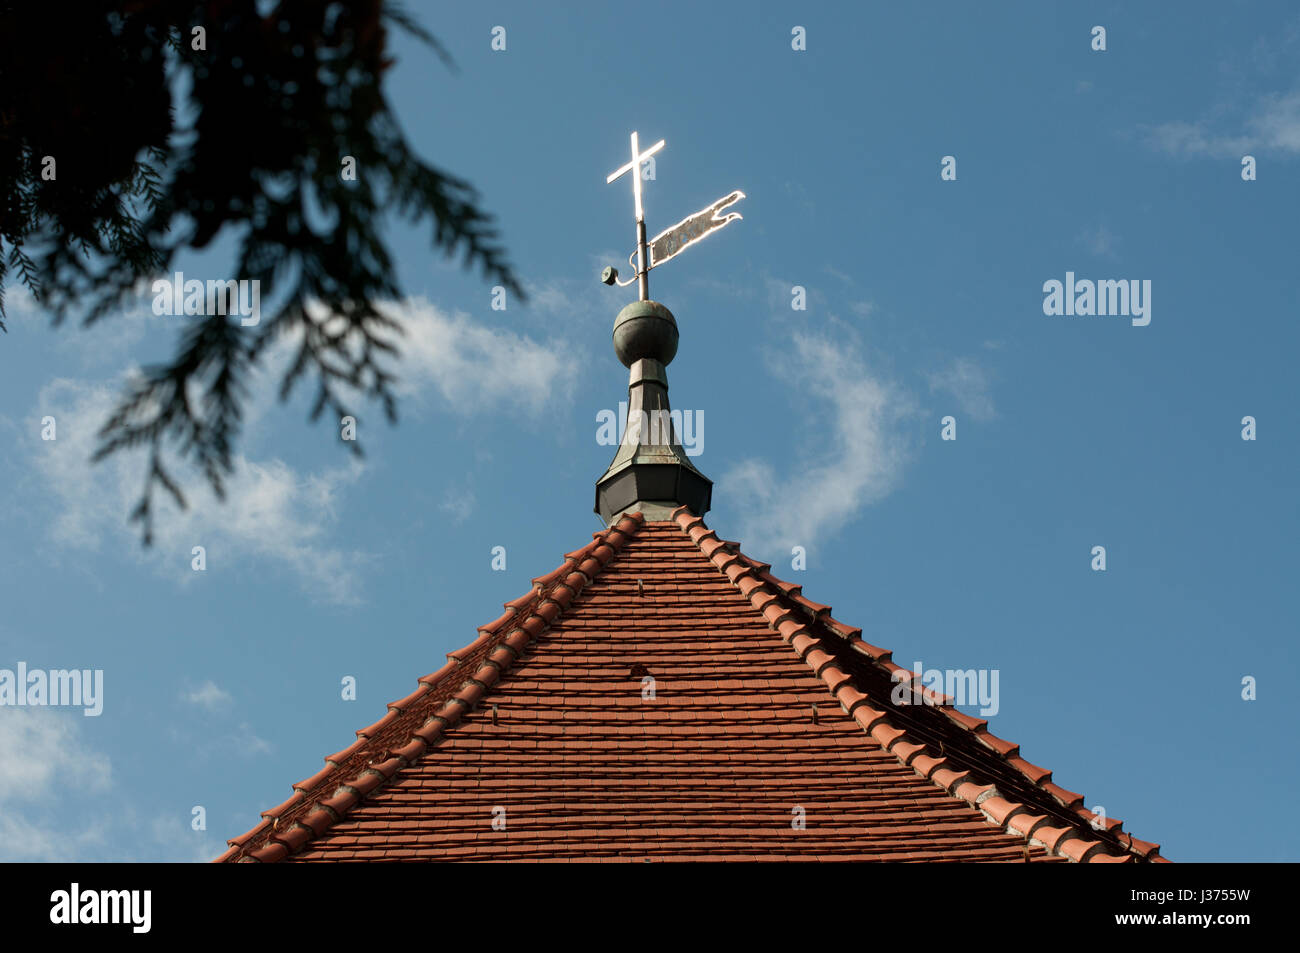 church spire at Stahnsdorfer cemetery, Brandenburg, Germany - Stock Image